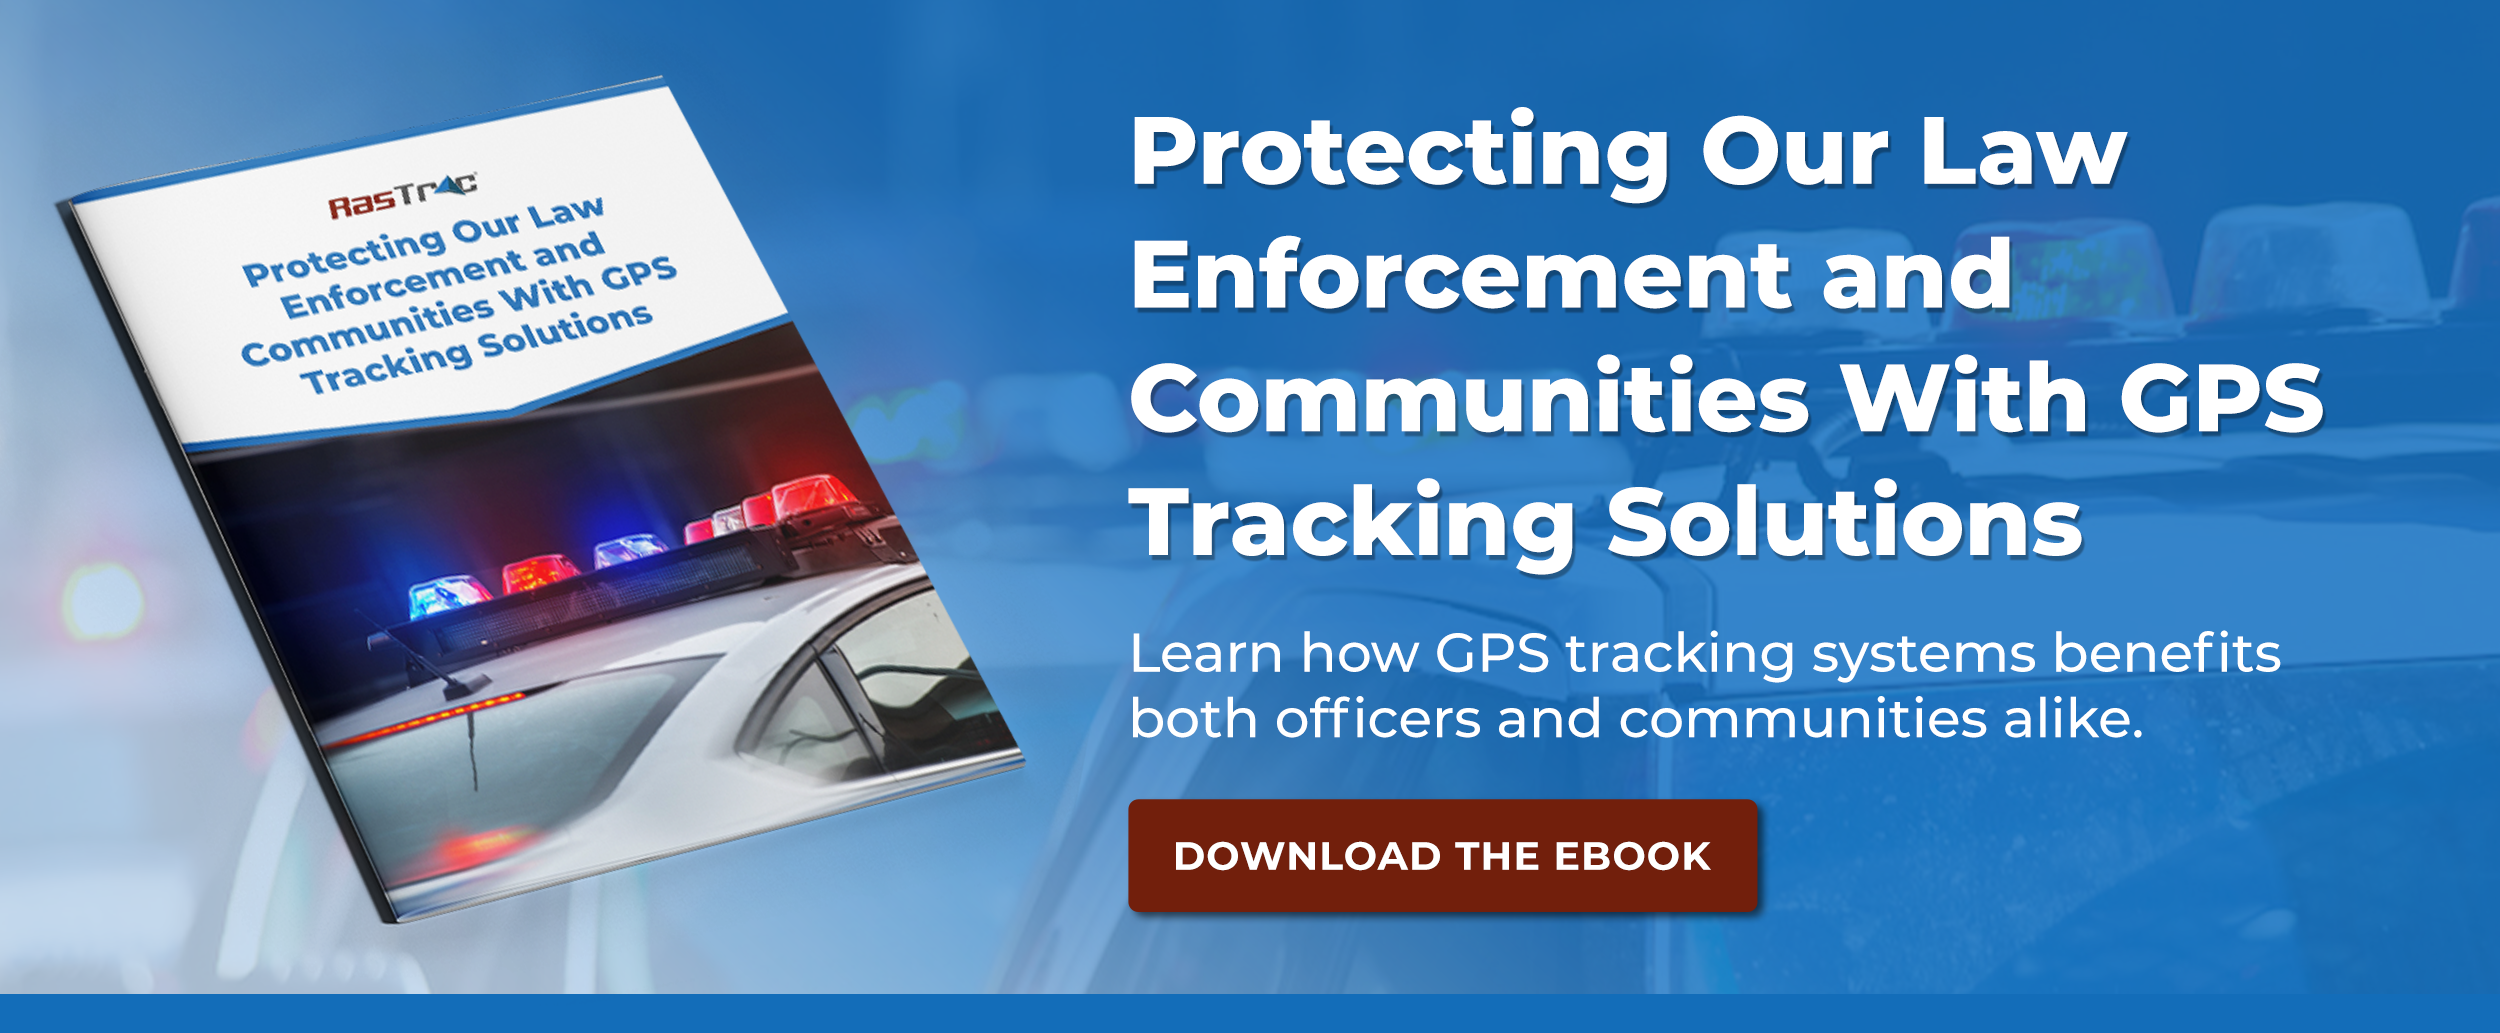 Protecting Law Enforcement with GPS Tracking Solutions CTA